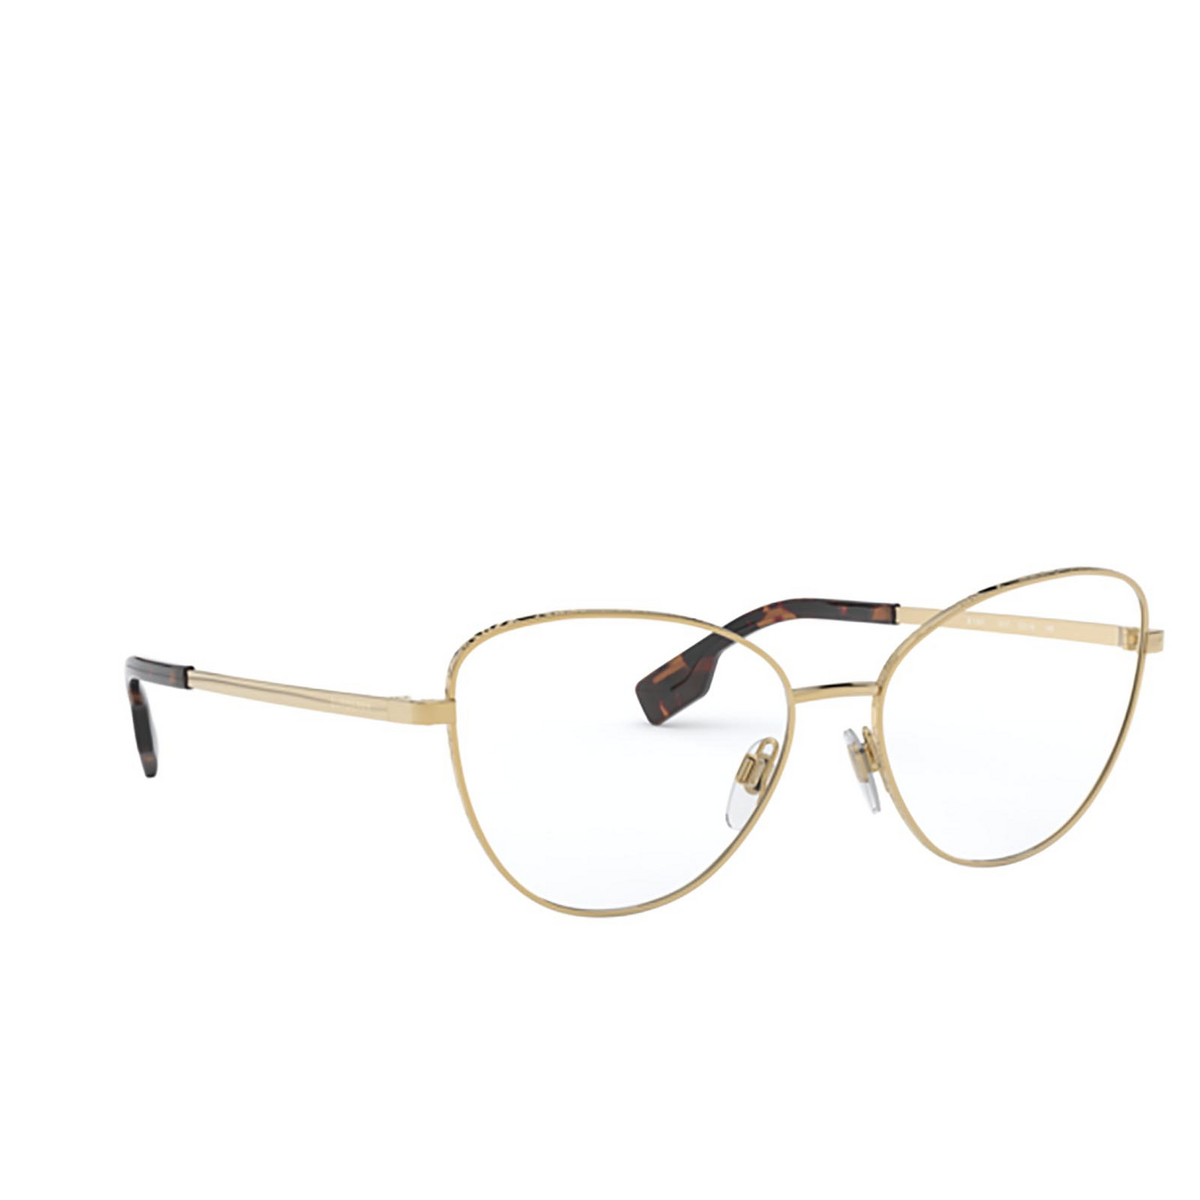 Burberry® Eyeglasses: Calcot BE1341 color Gold 1017 - front view.